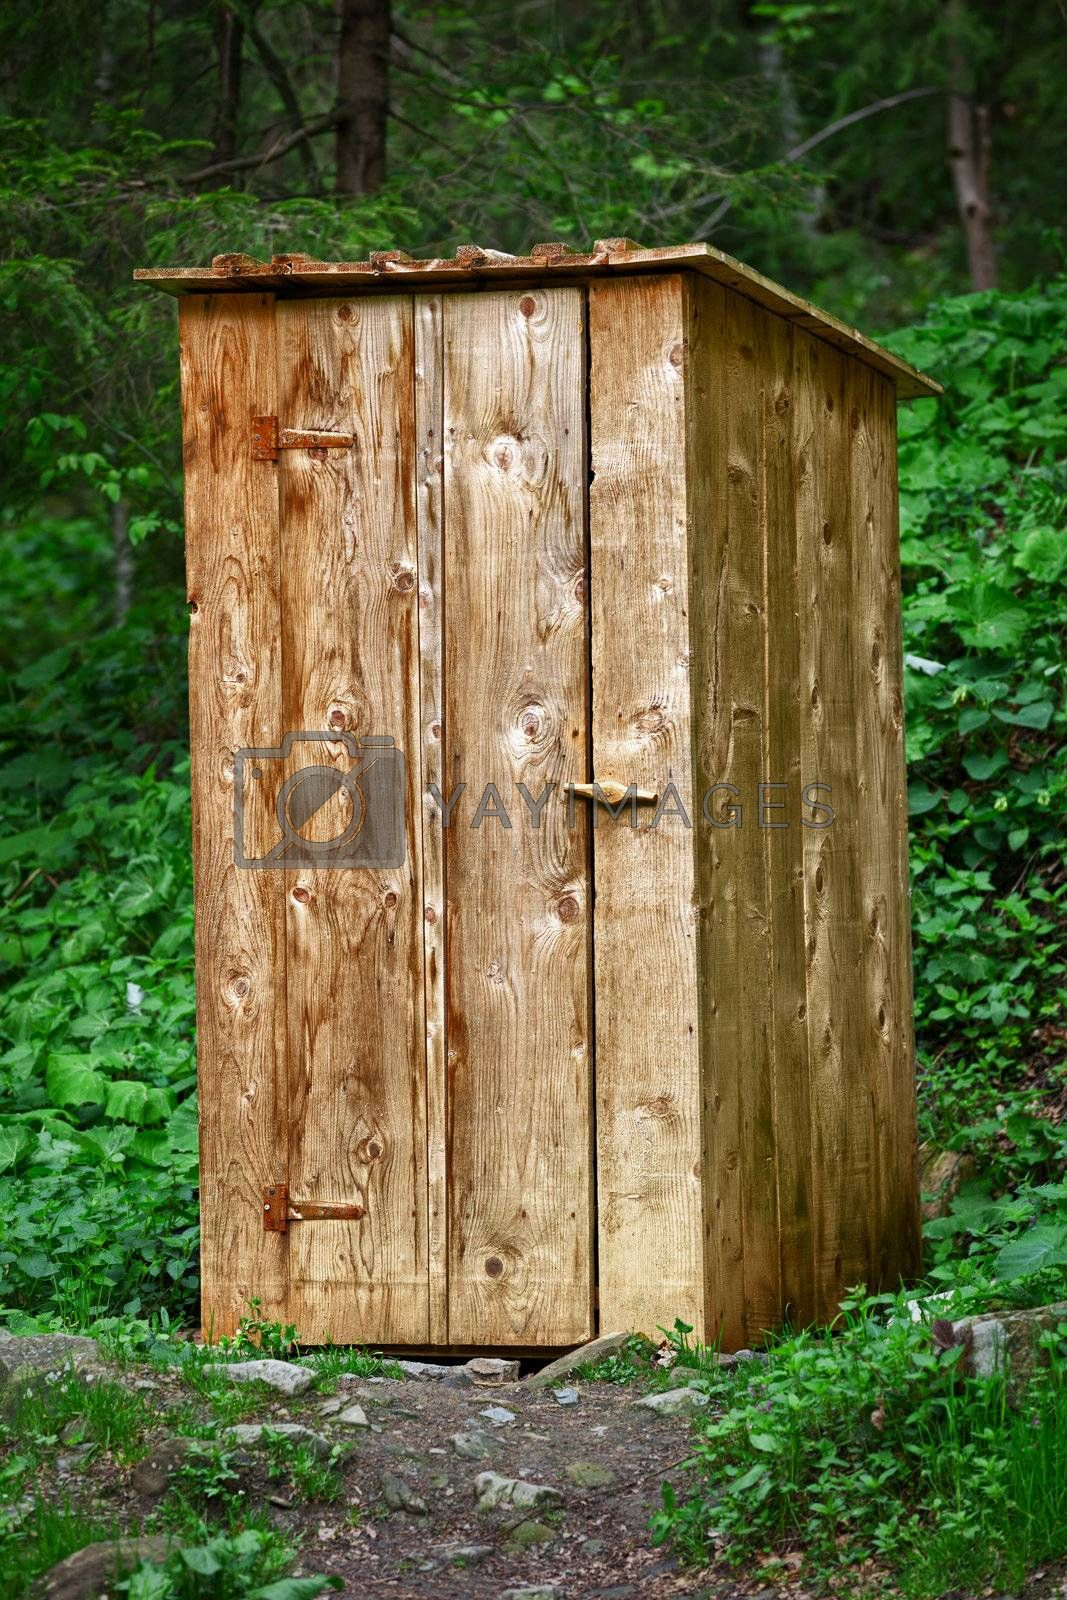 Rustic old wooden toilet in the forest